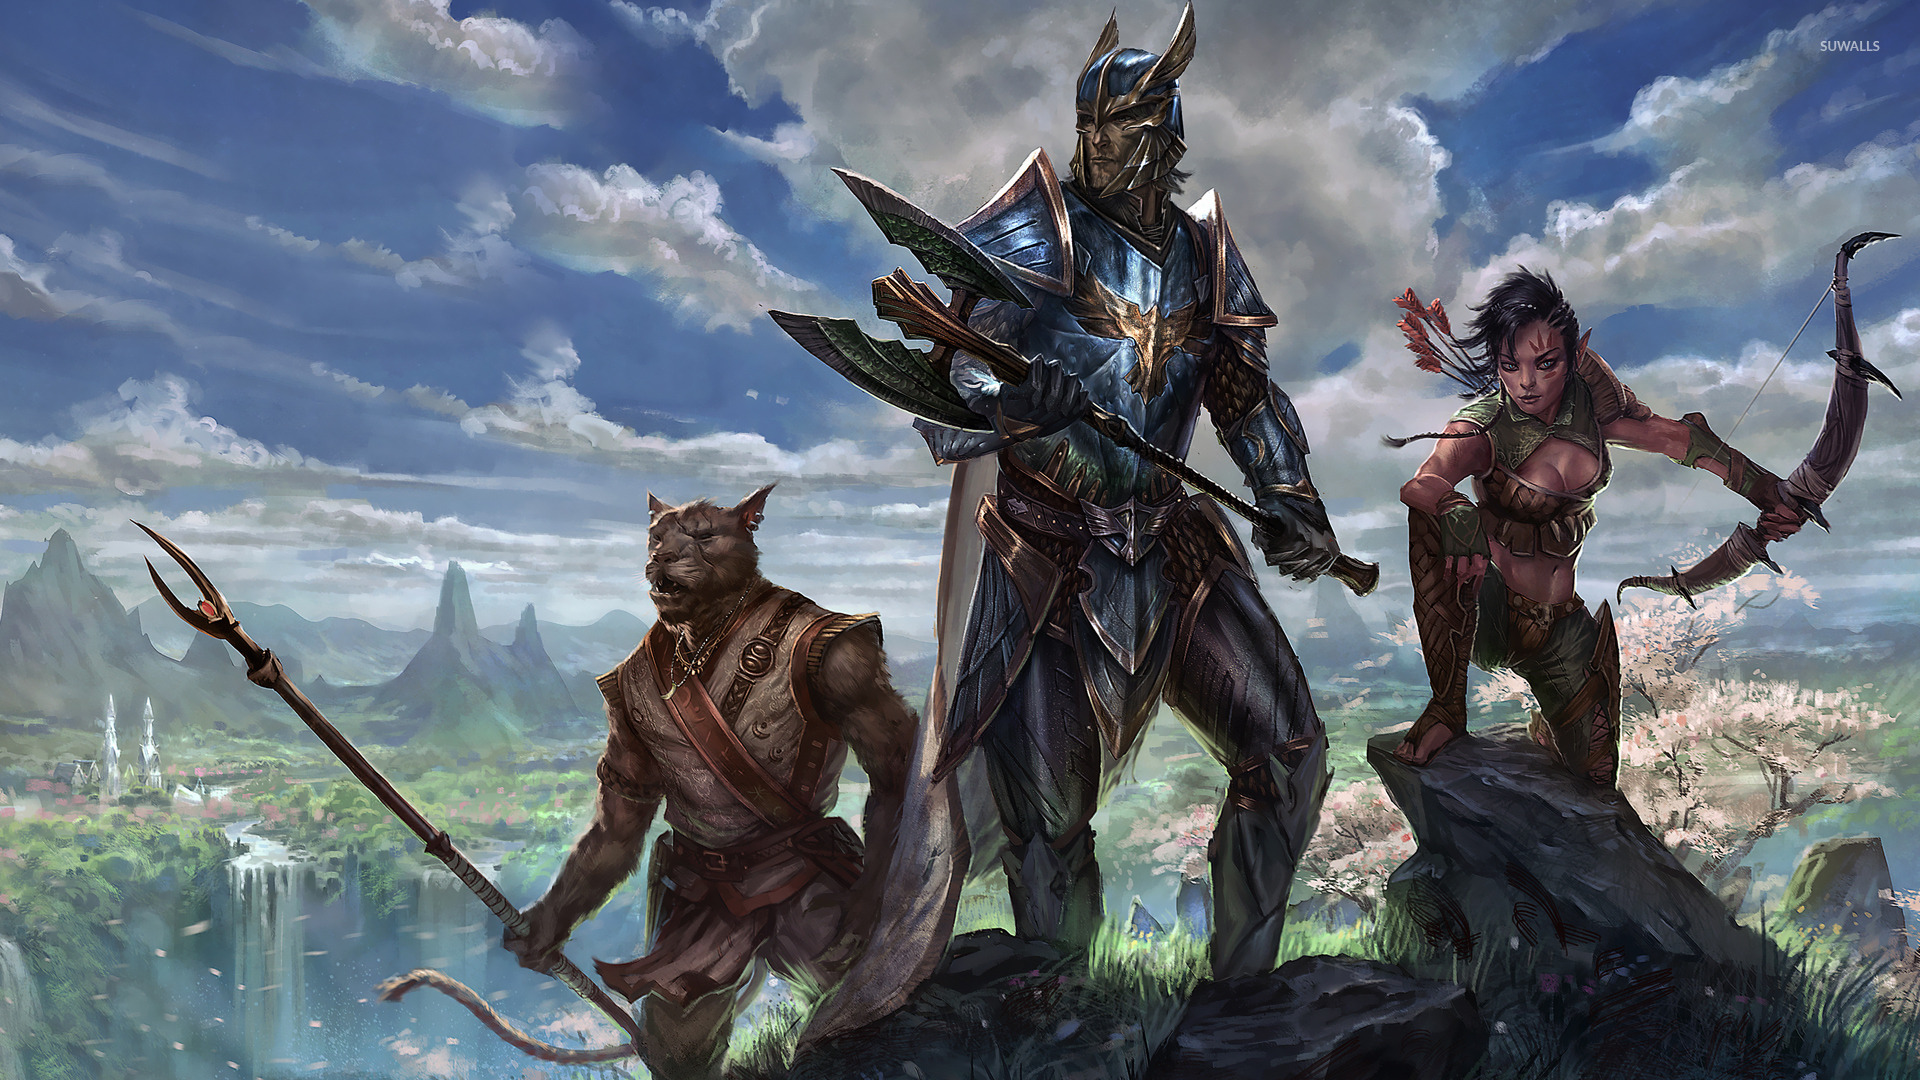 The Elder Scrolls Online 10 Wallpaper Game Wallpapers 21368